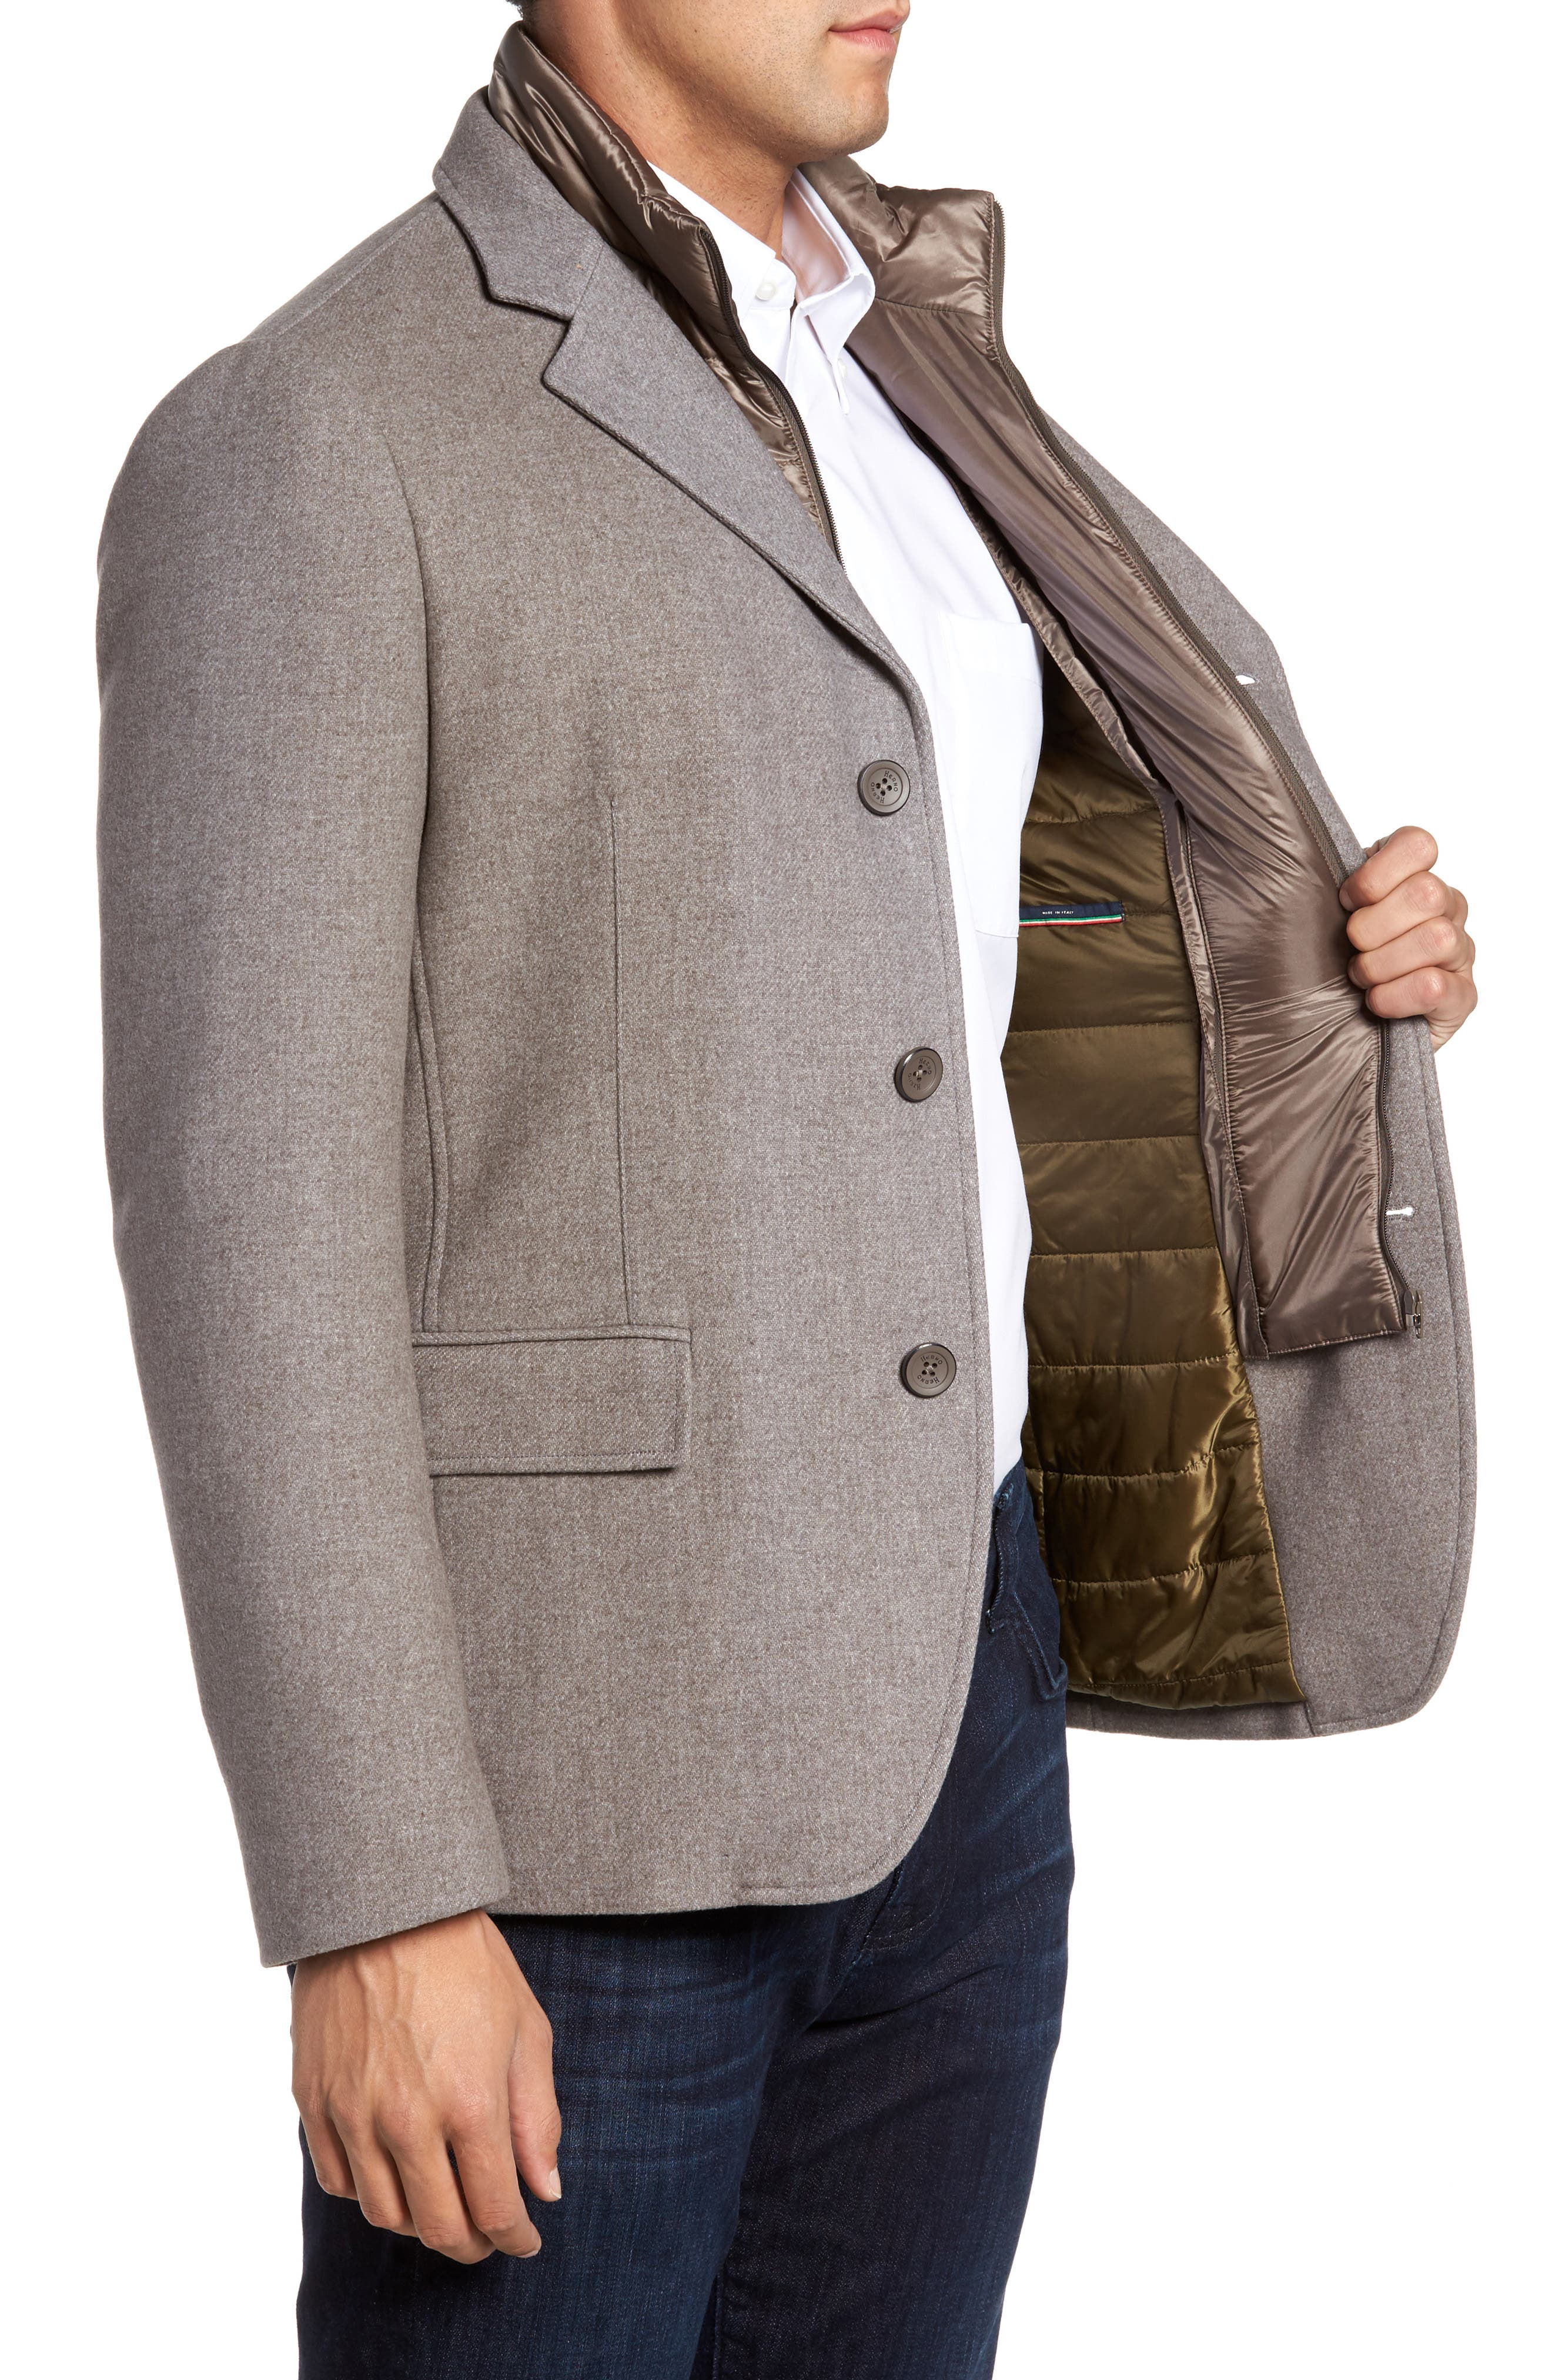 Wool Blend Blazer with Removable Quilted Bib,                             Alternate thumbnail 3, color,                             Oatmeal